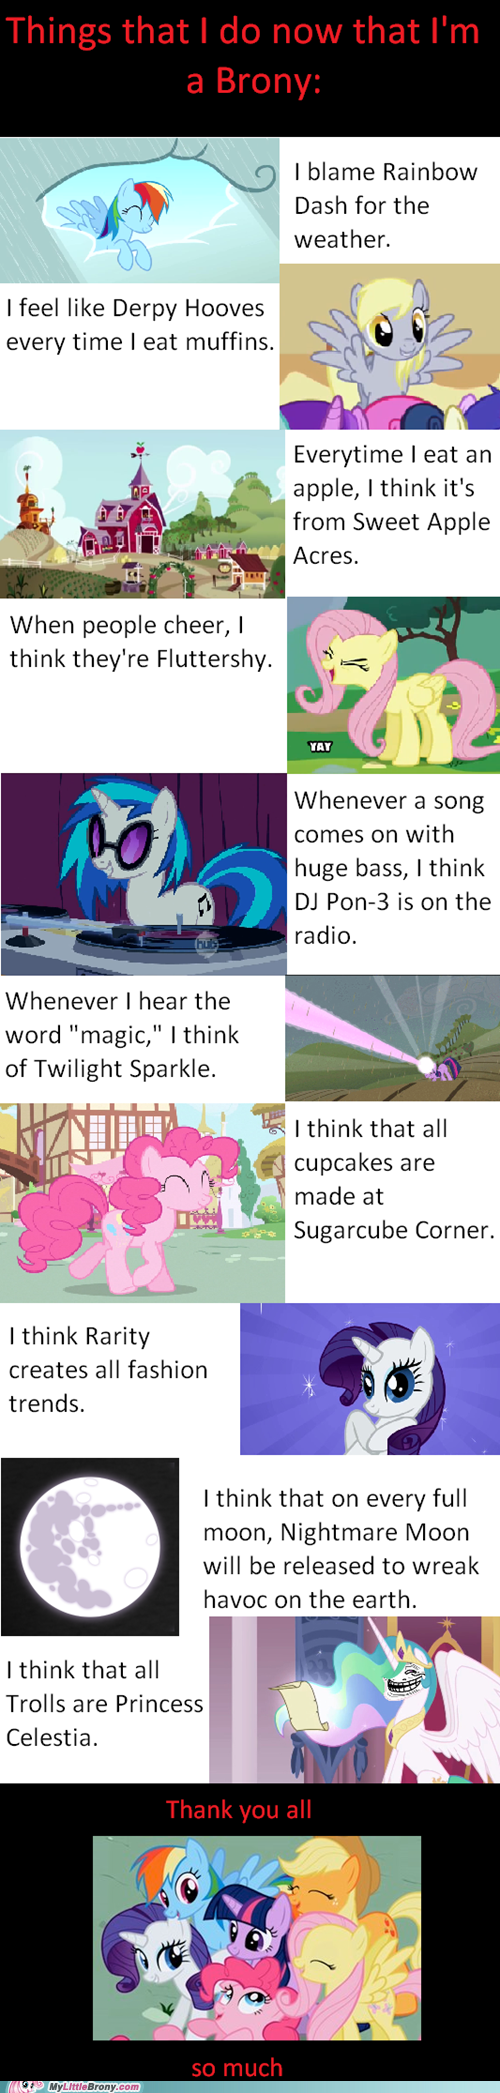 best of week how i see life lauren faust lessons meme my little pony thank you - 5445457408